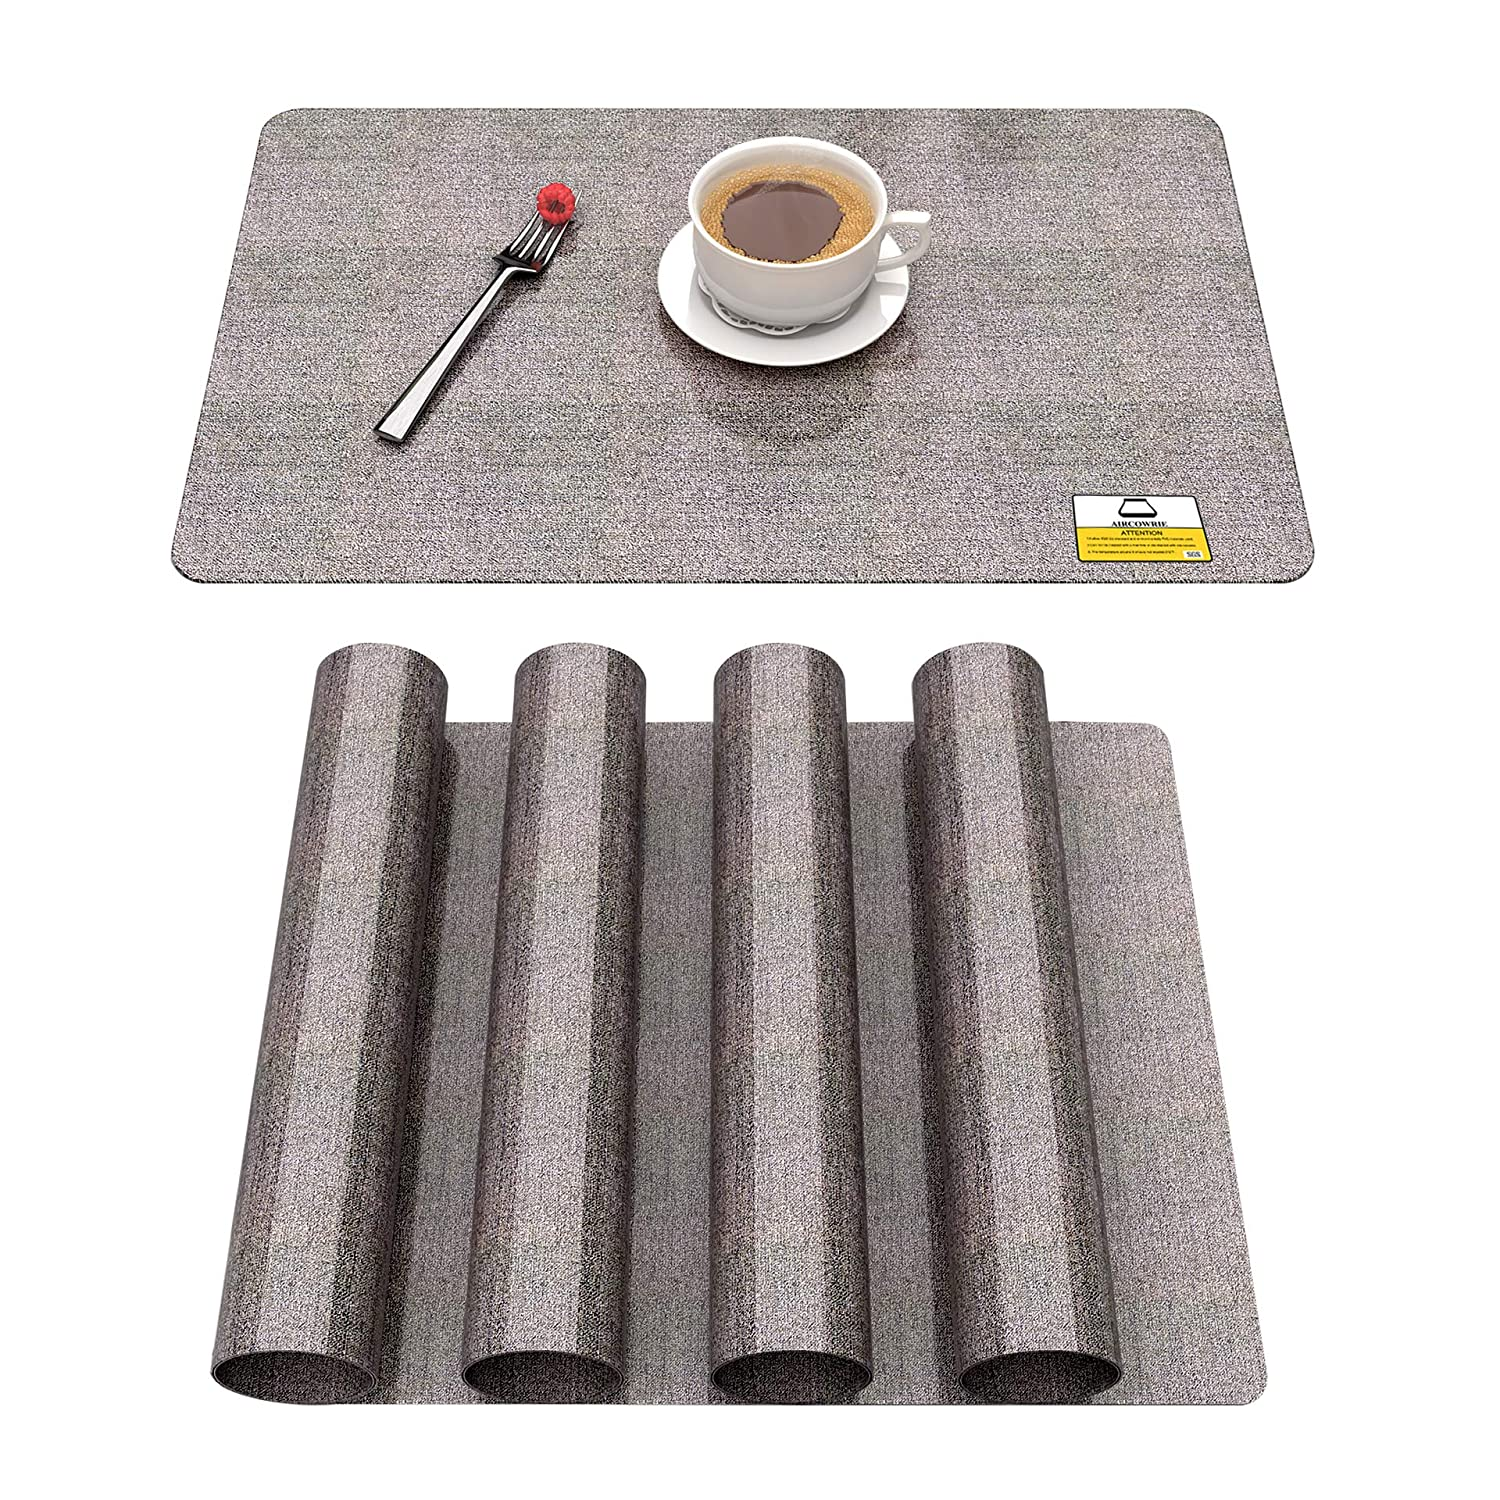 AIRCOWRIE Placemats Heat-Resistant Placemats Non-Slip Stain Resistant Washable Vinyl Table Mats for Tabletop Protection and Decoration 17.5x12 Inches Set of 4/6